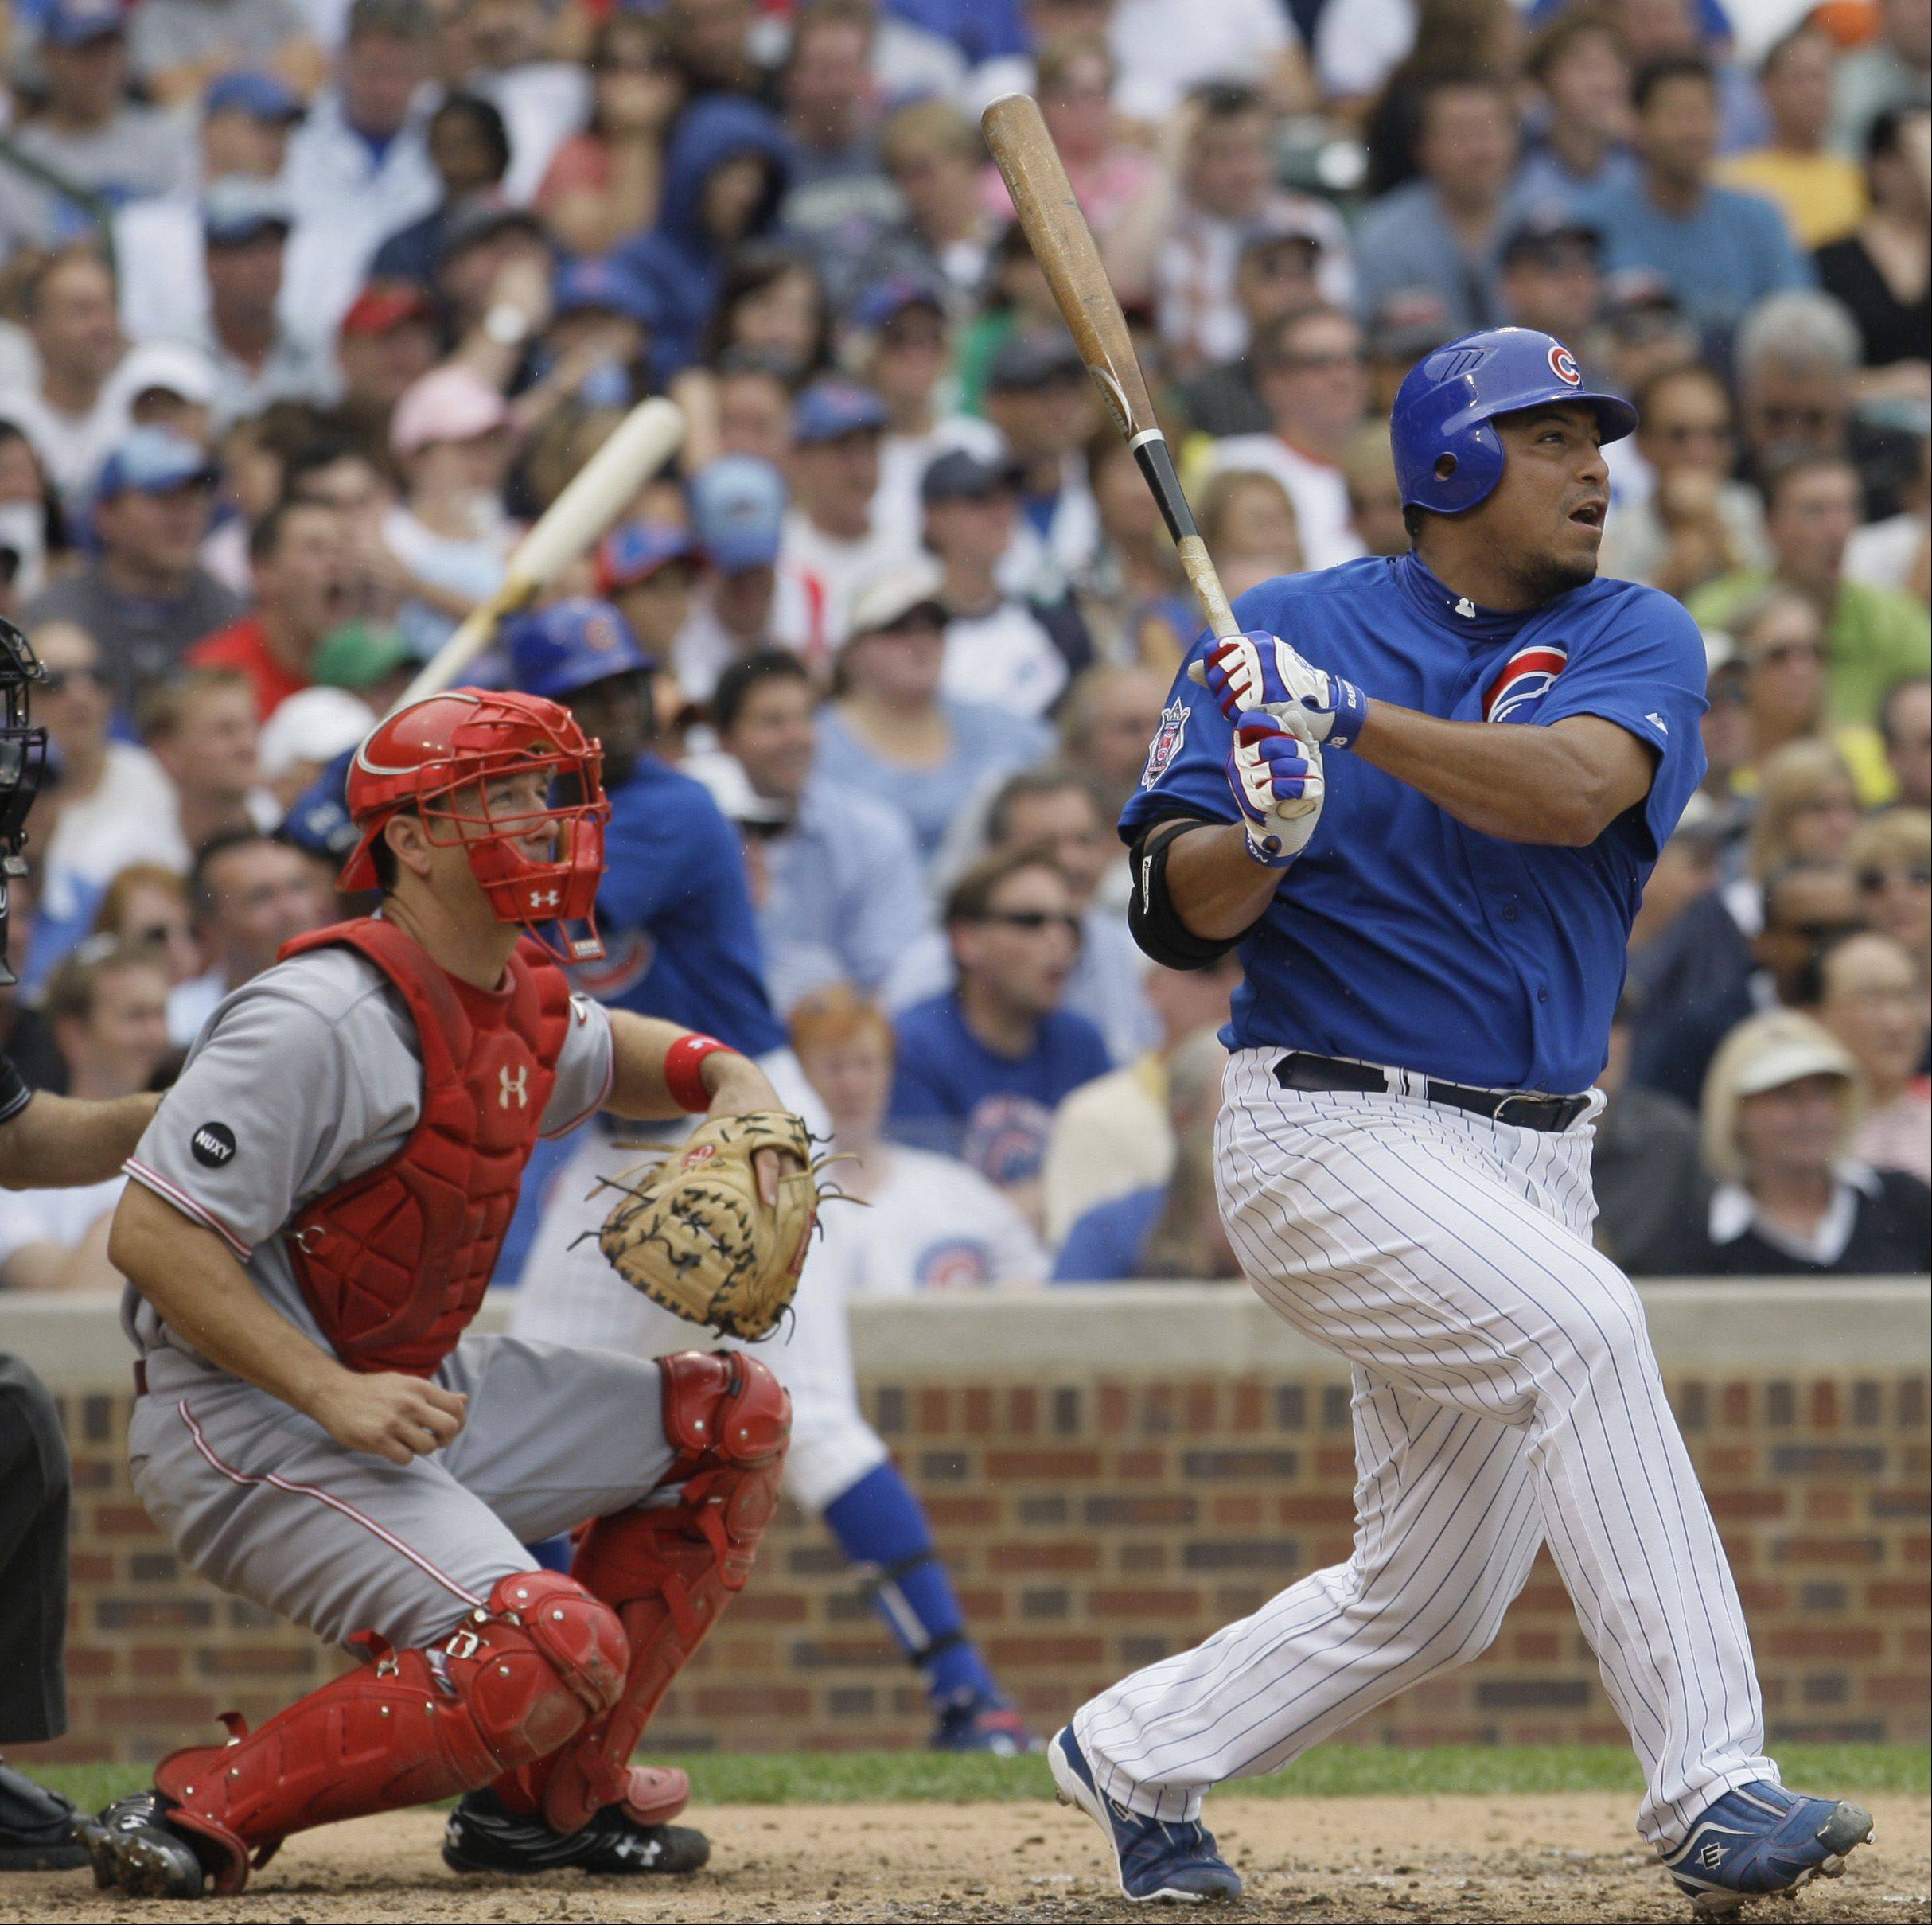 Chicago Cubs' Carlos Zambrano and Cincinnati Reds catcher Paul Bako watch Zambrano's solo home run during the third inning of a baseball game Thursday, Aug. 21, 2008, in Chicago.